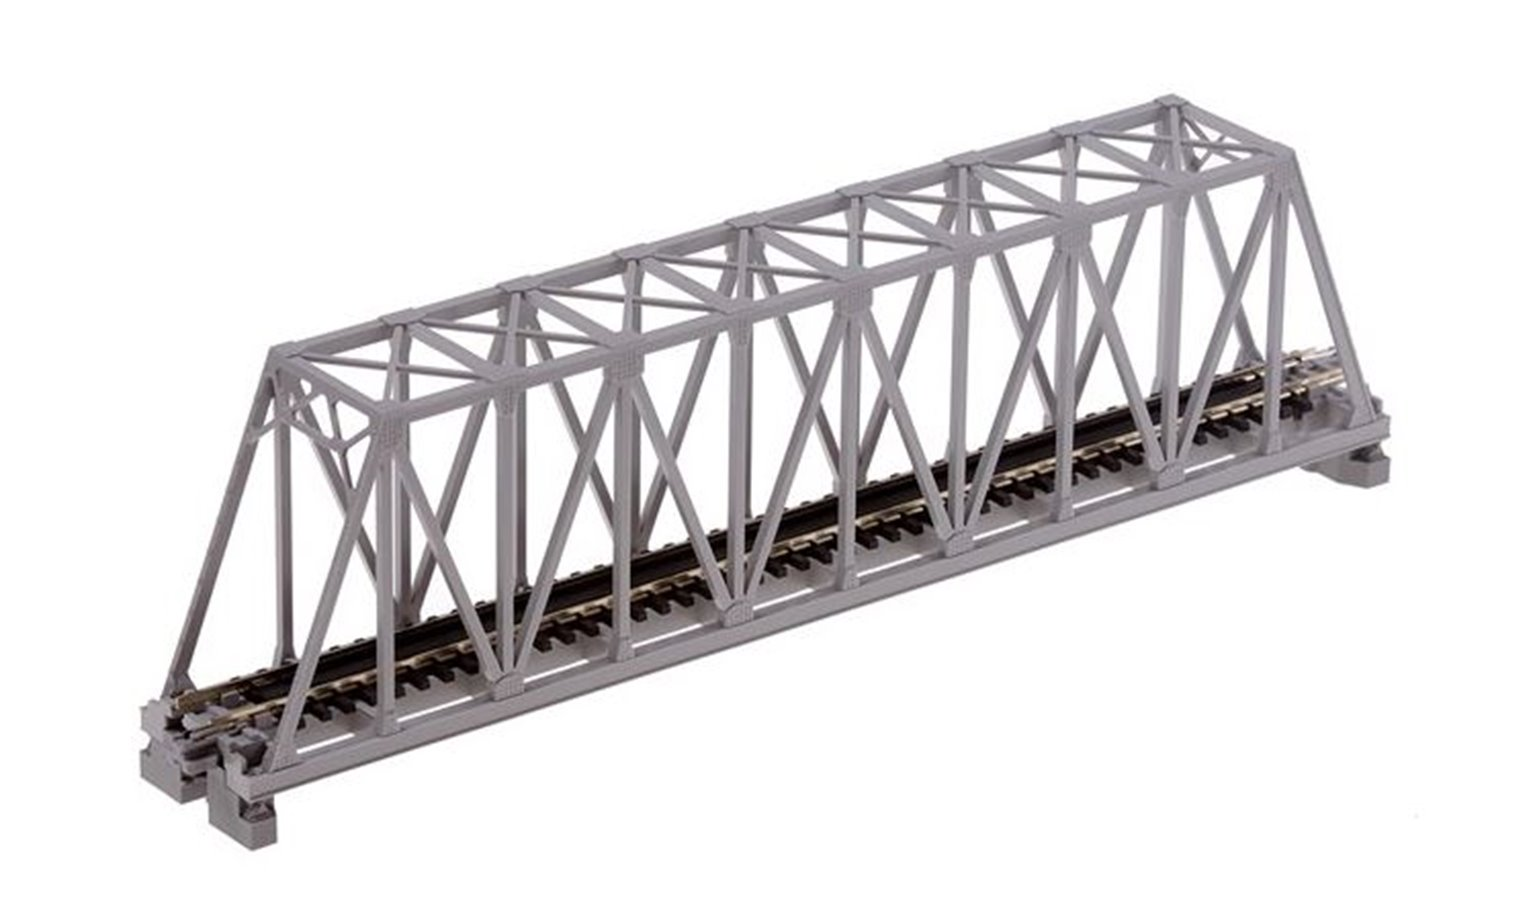 20-432 Kato 20-432 Single Track Truss Girder Bridge 248mm